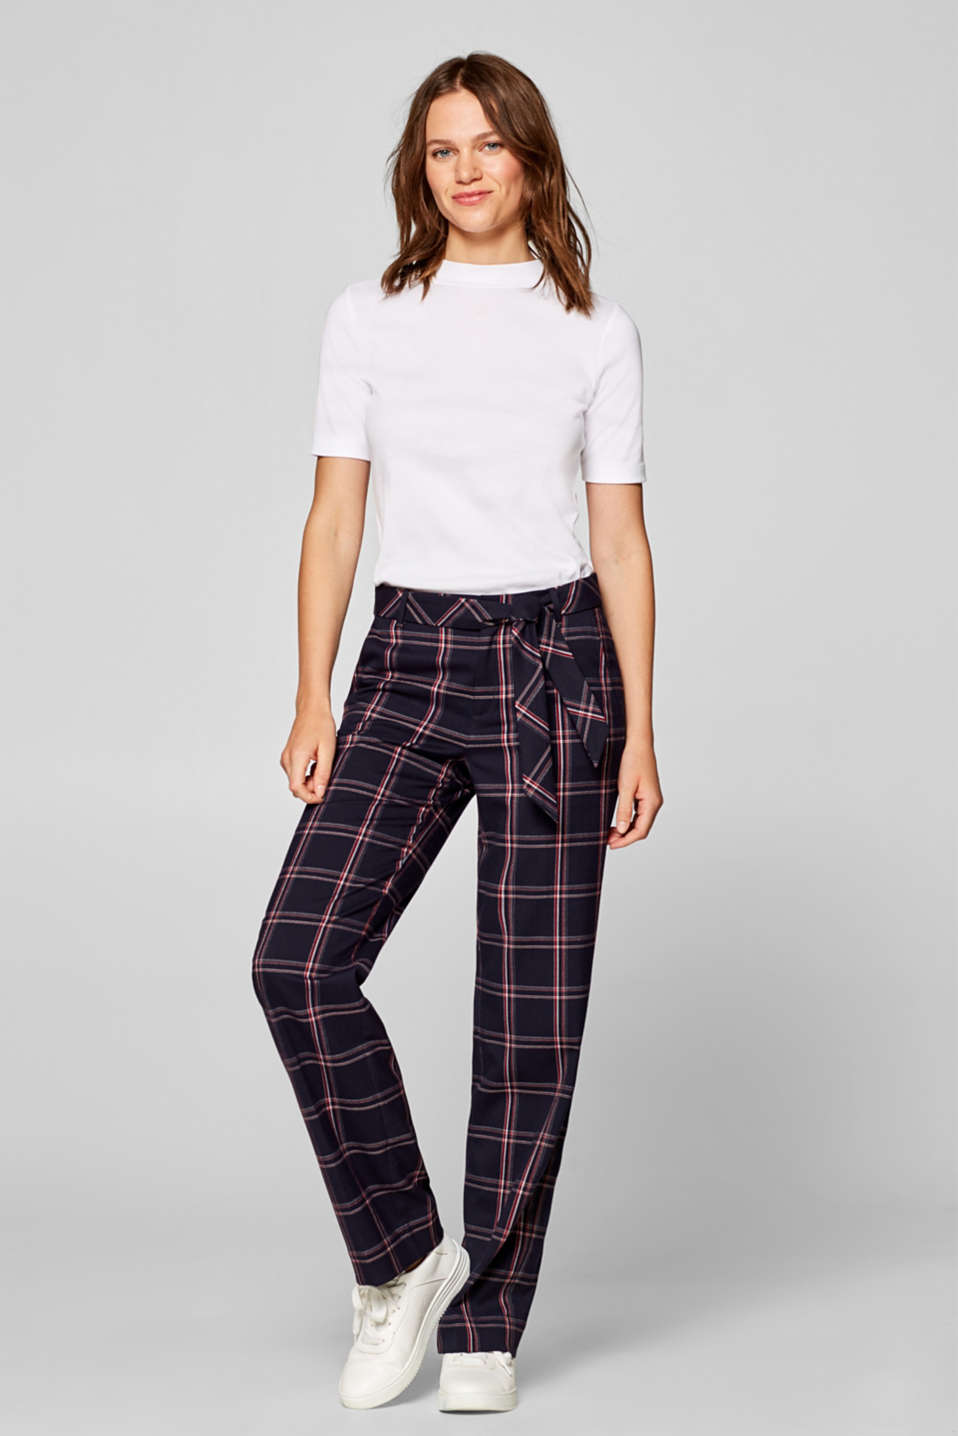 Esprit - Check trousers with a wide leg and belt